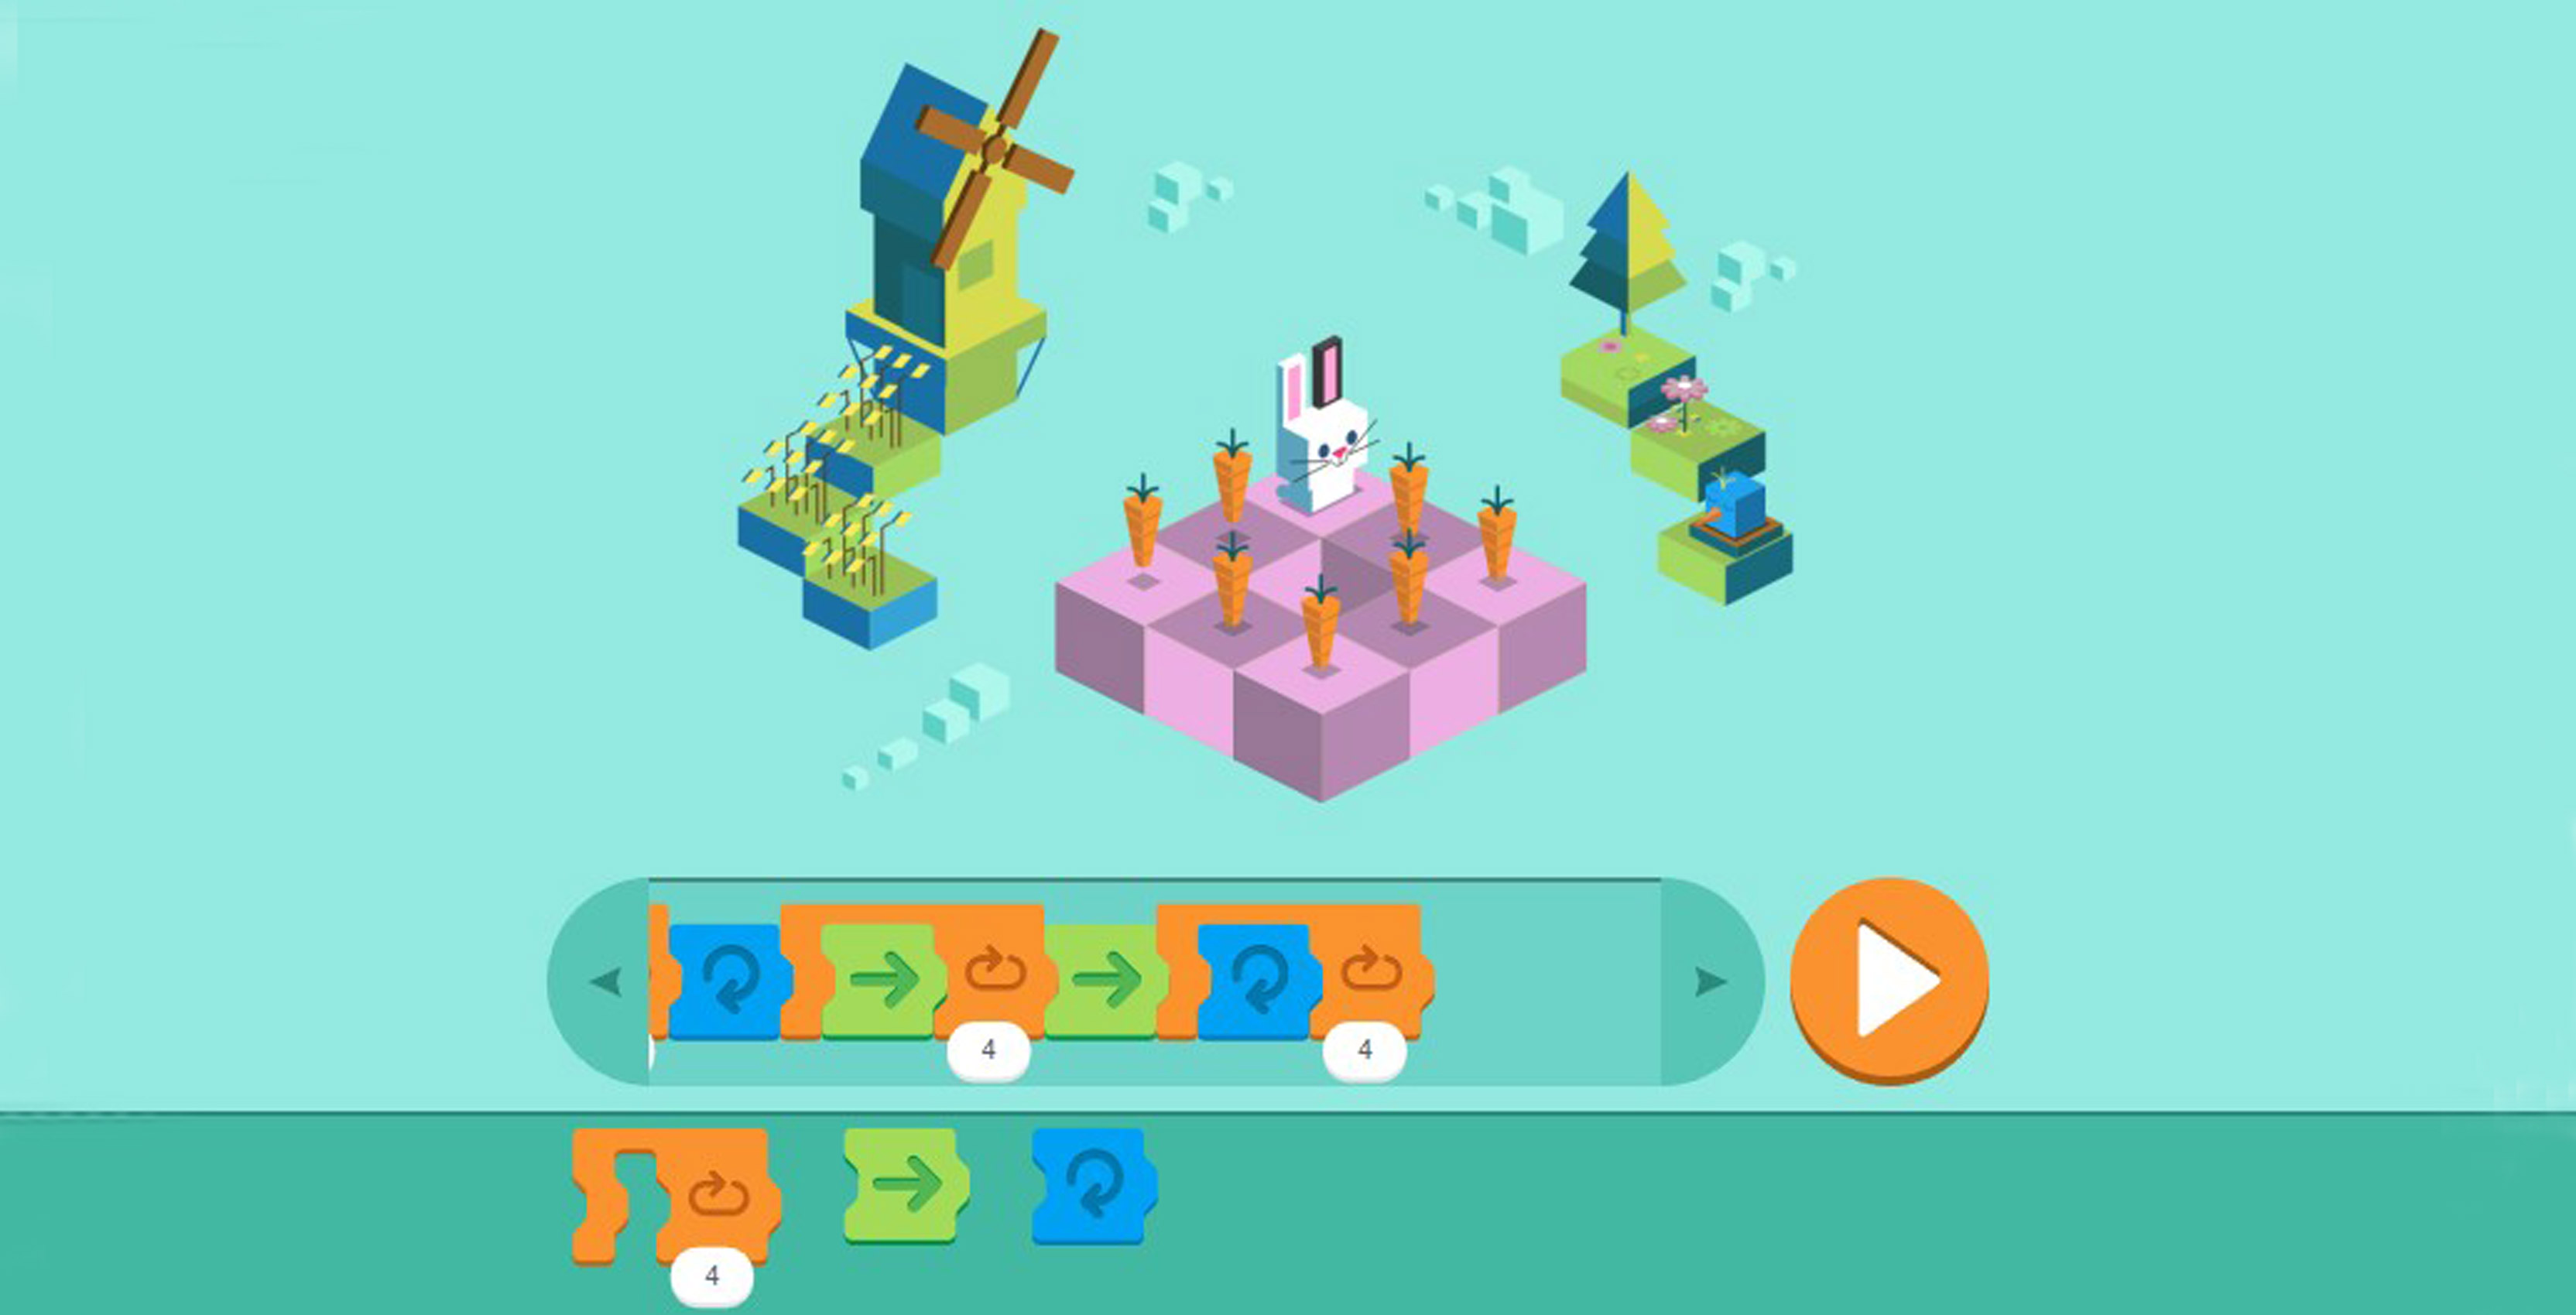 Google's newest Doodle celebrates 50 years of kids coding